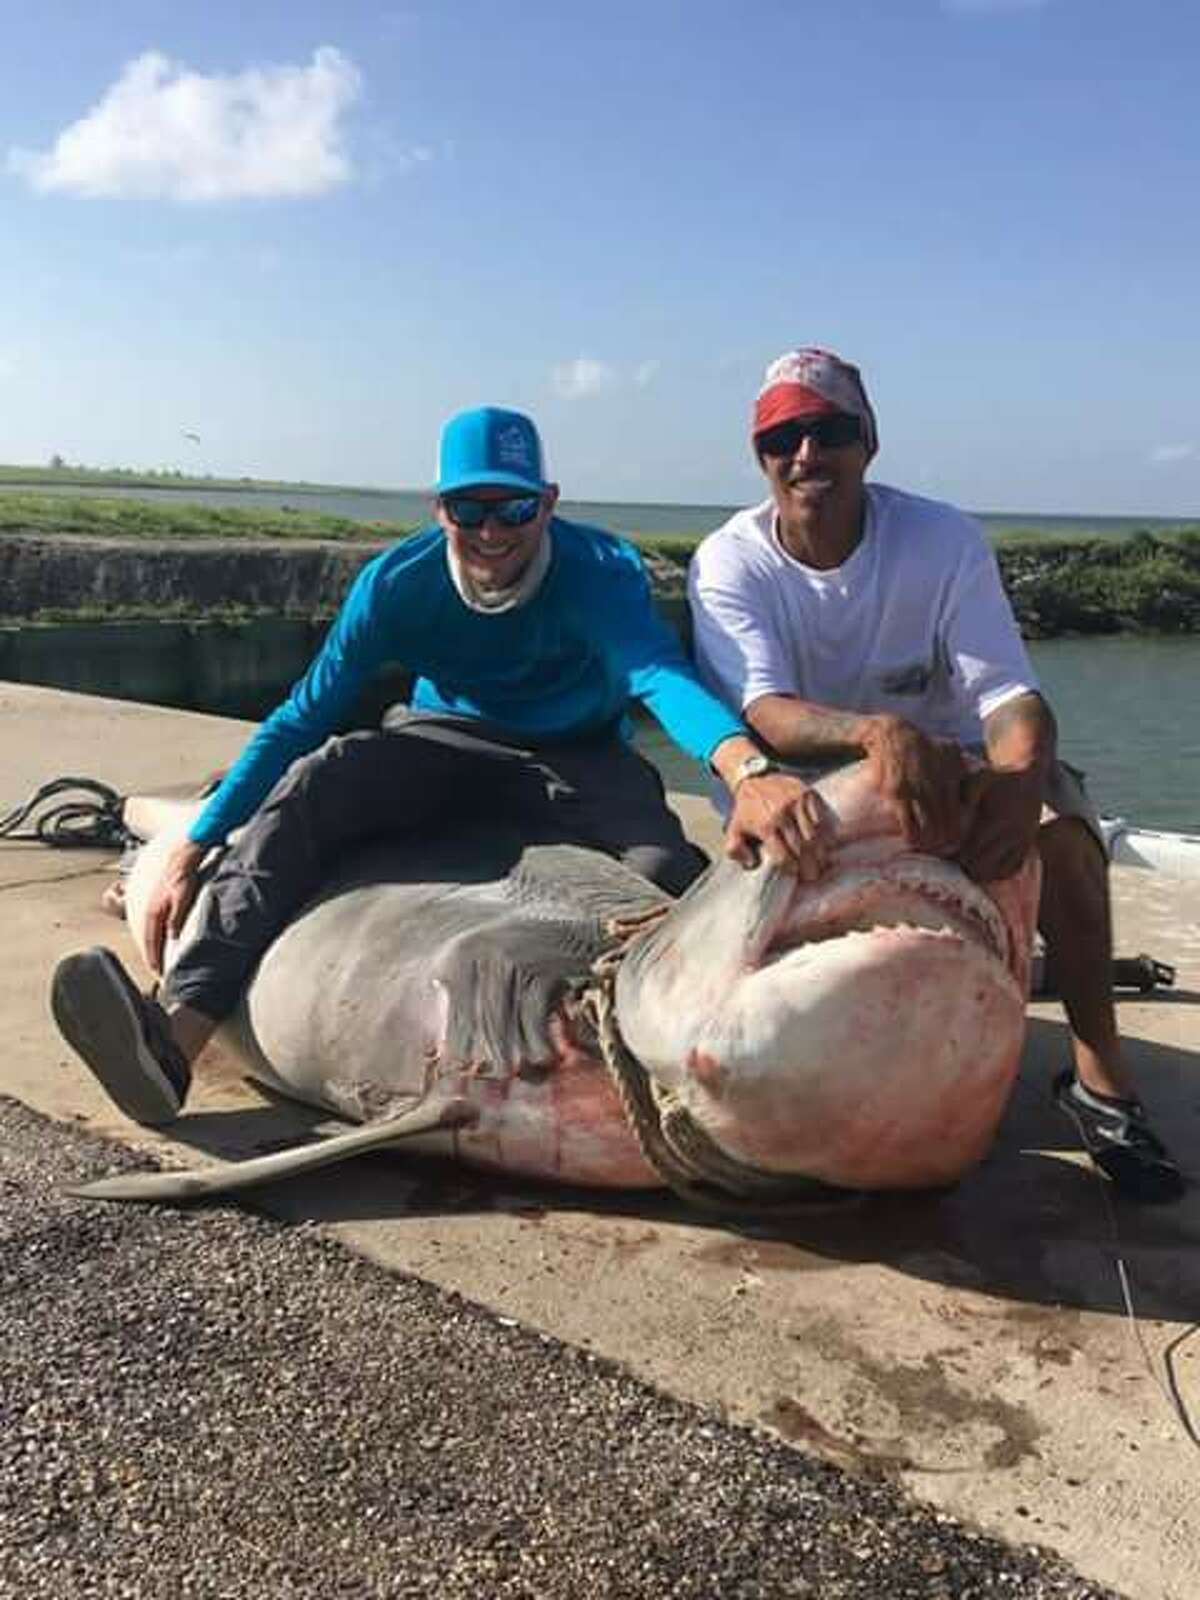 On Sunday, July 2, a massive 964-pound Tiger Shark was reeled in off the shores of Texas City by Sergio Roque (right). The huge catch is 85 percent of the Texas state record.